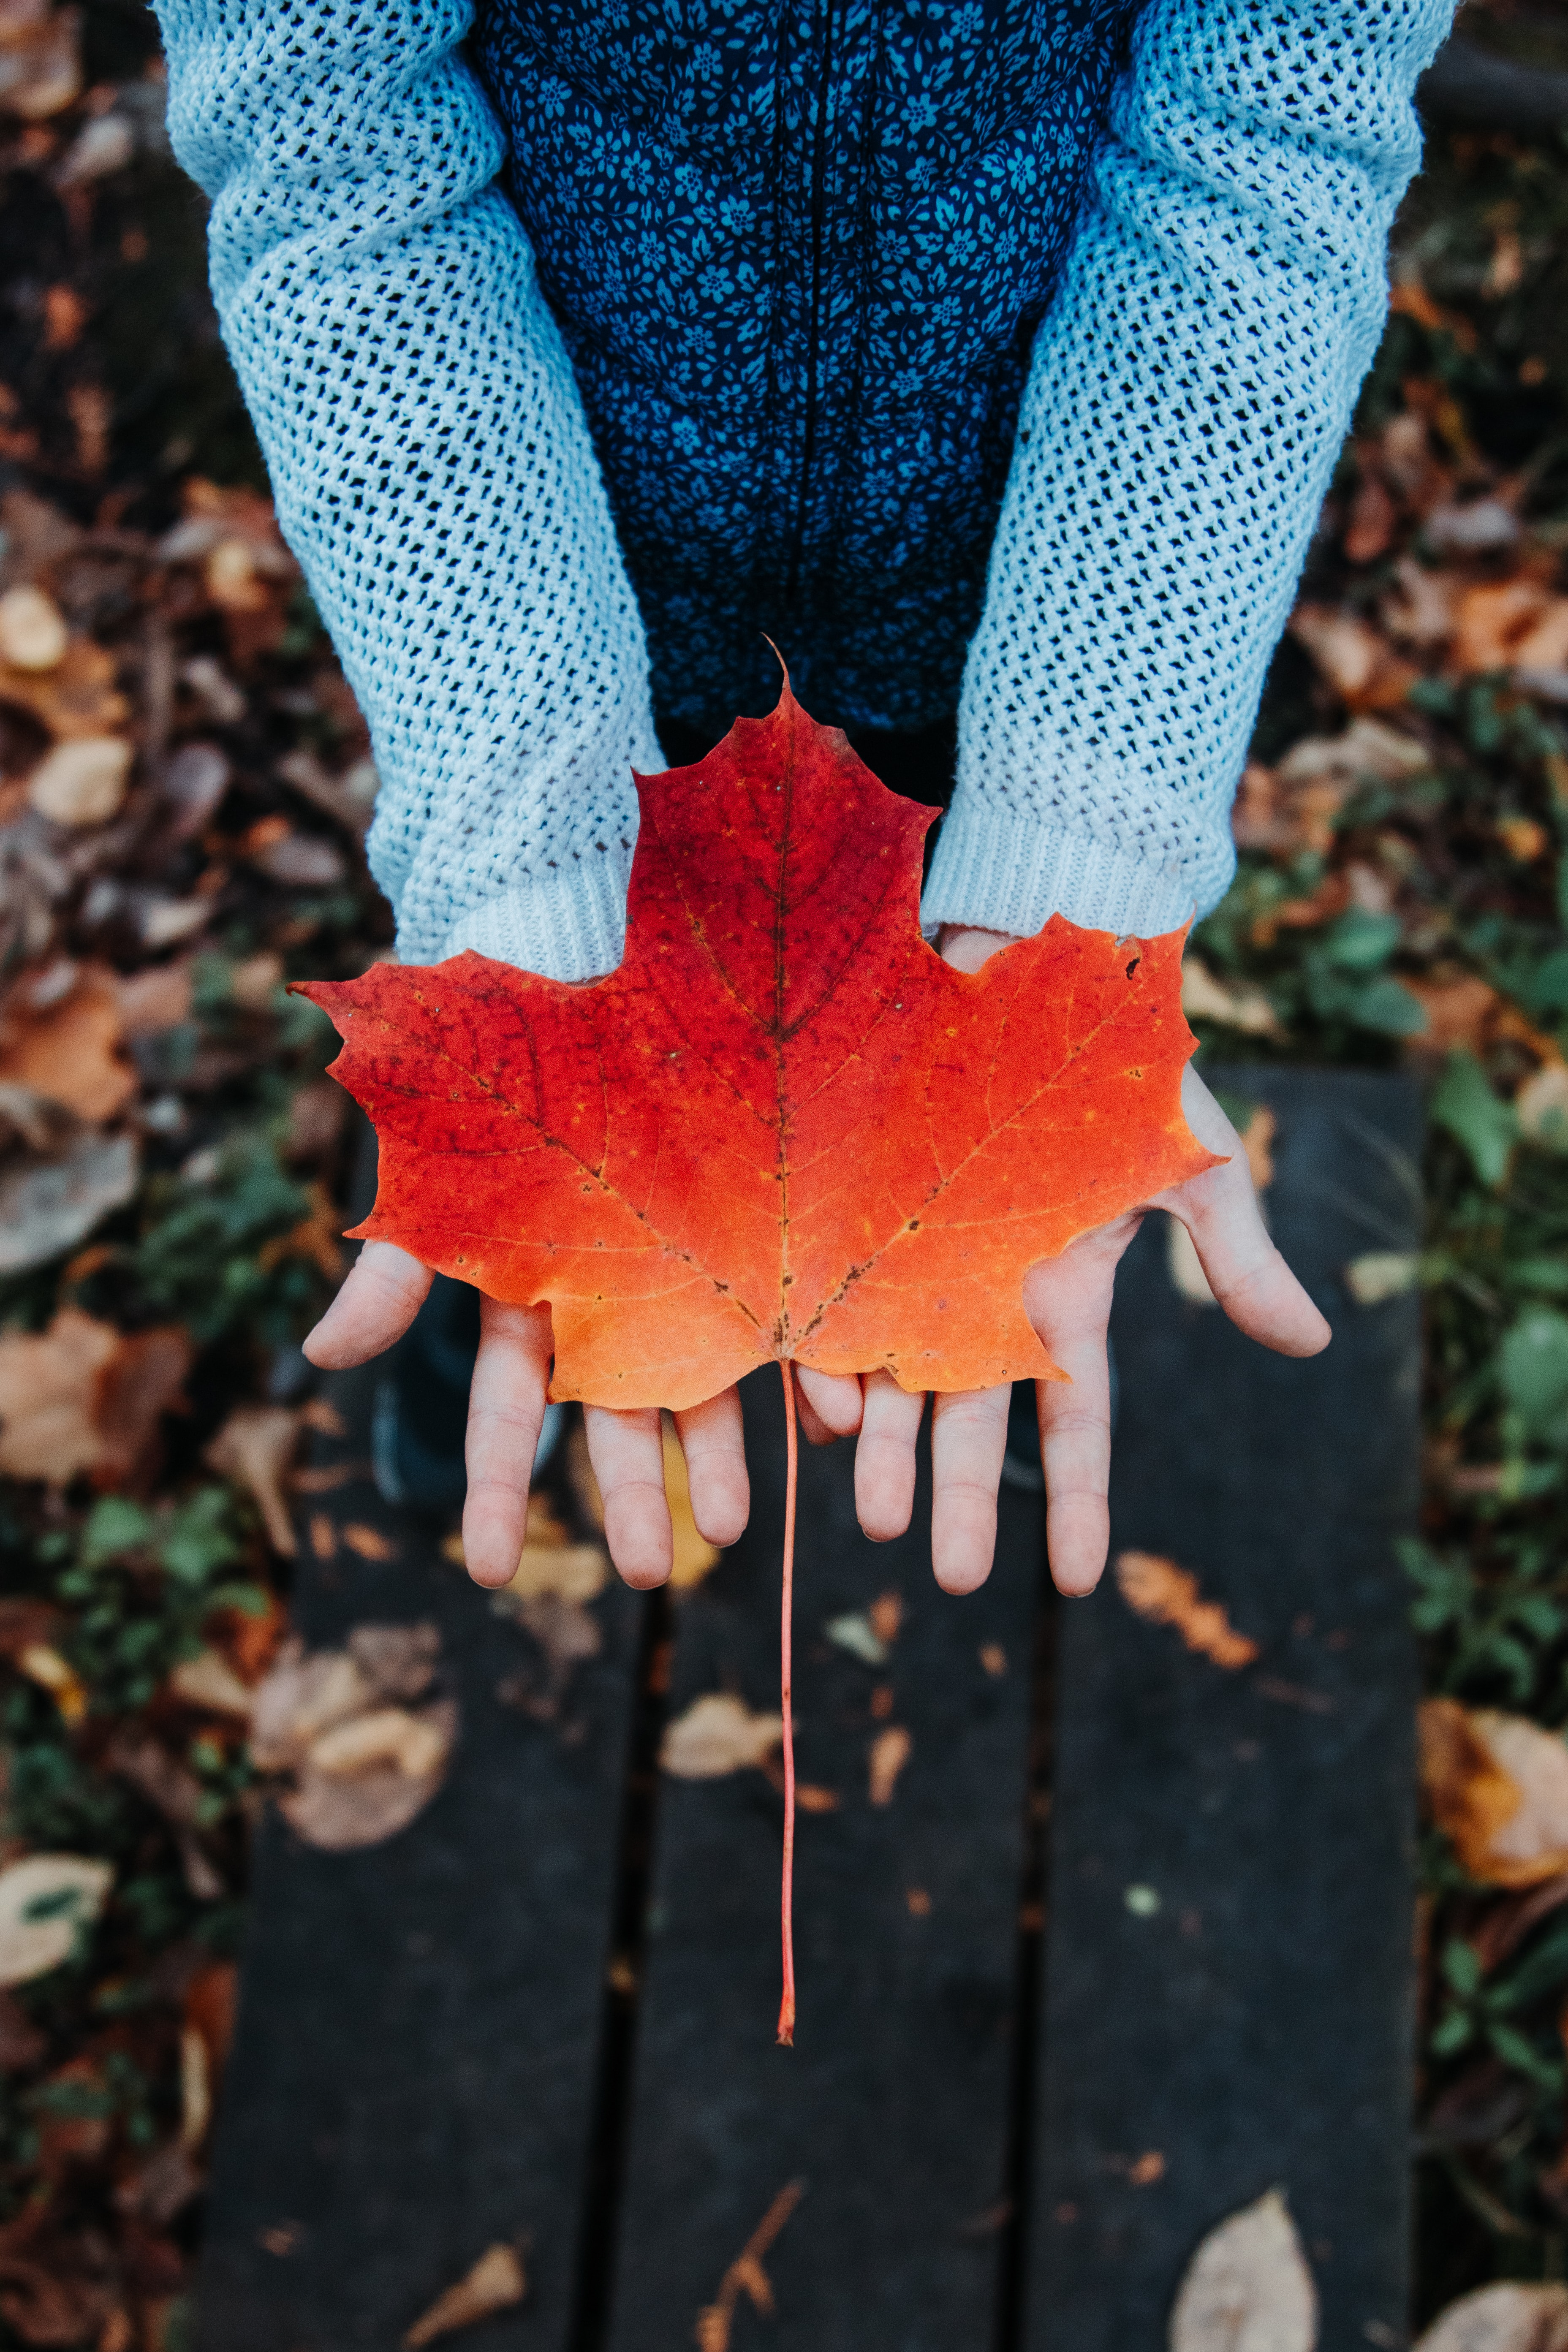 152914 download wallpaper Miscellanea, Miscellaneous, Maple, Sheet, Leaf, Autumn, Hands, Sweater screensavers and pictures for free